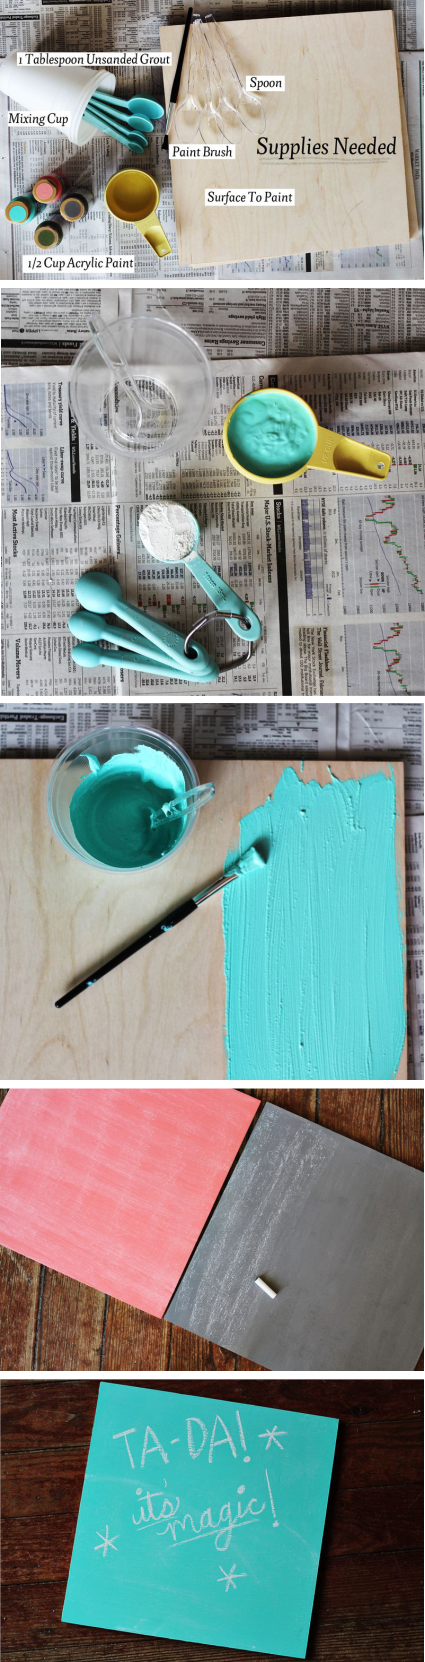 How to make chalkboard paint in any color | Random Tuesdays